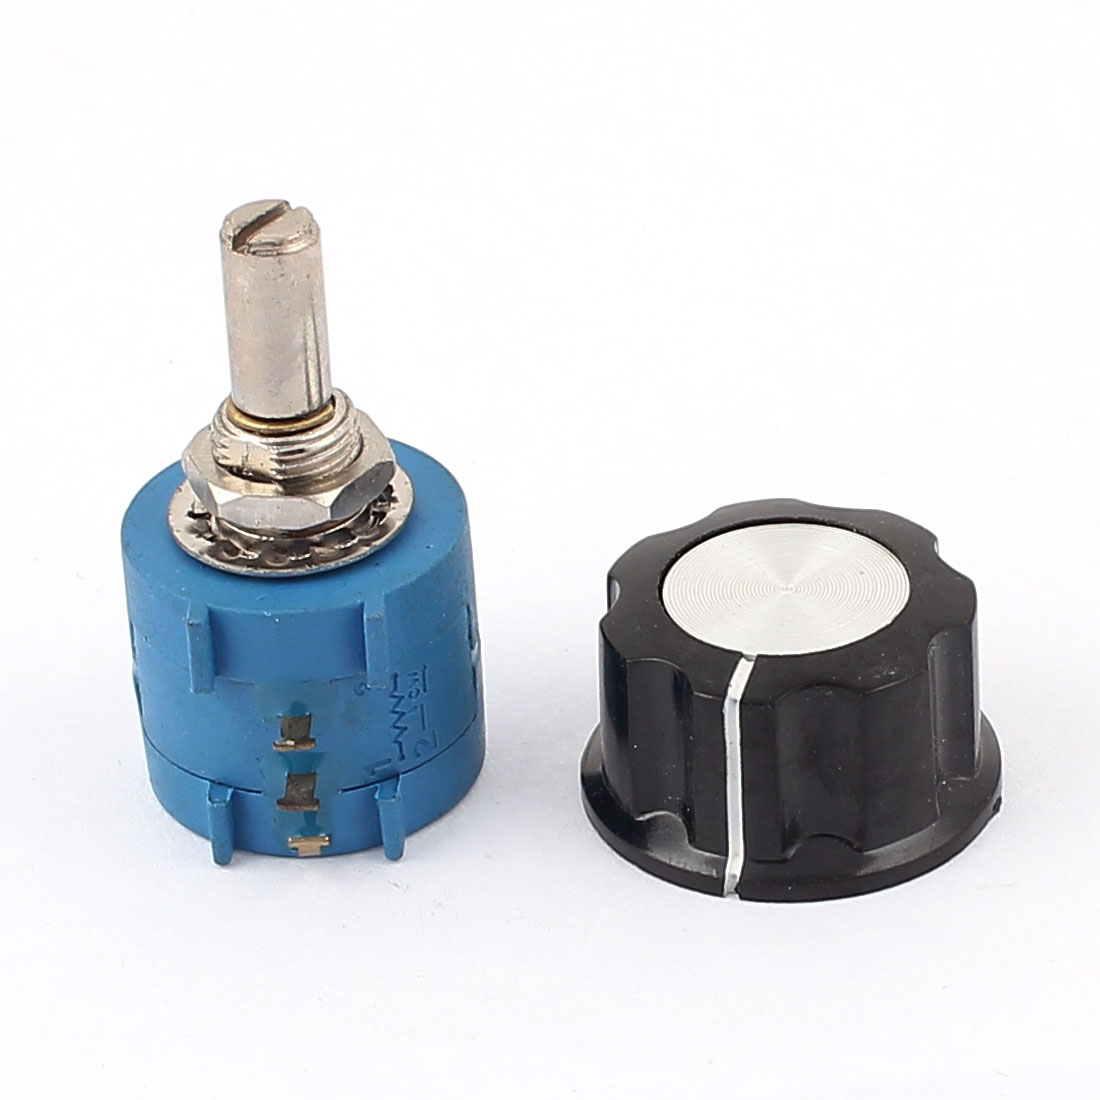 2K Ohm 6mm Shaft Diameter Rotary Wire Wound Potentiometer w Knob